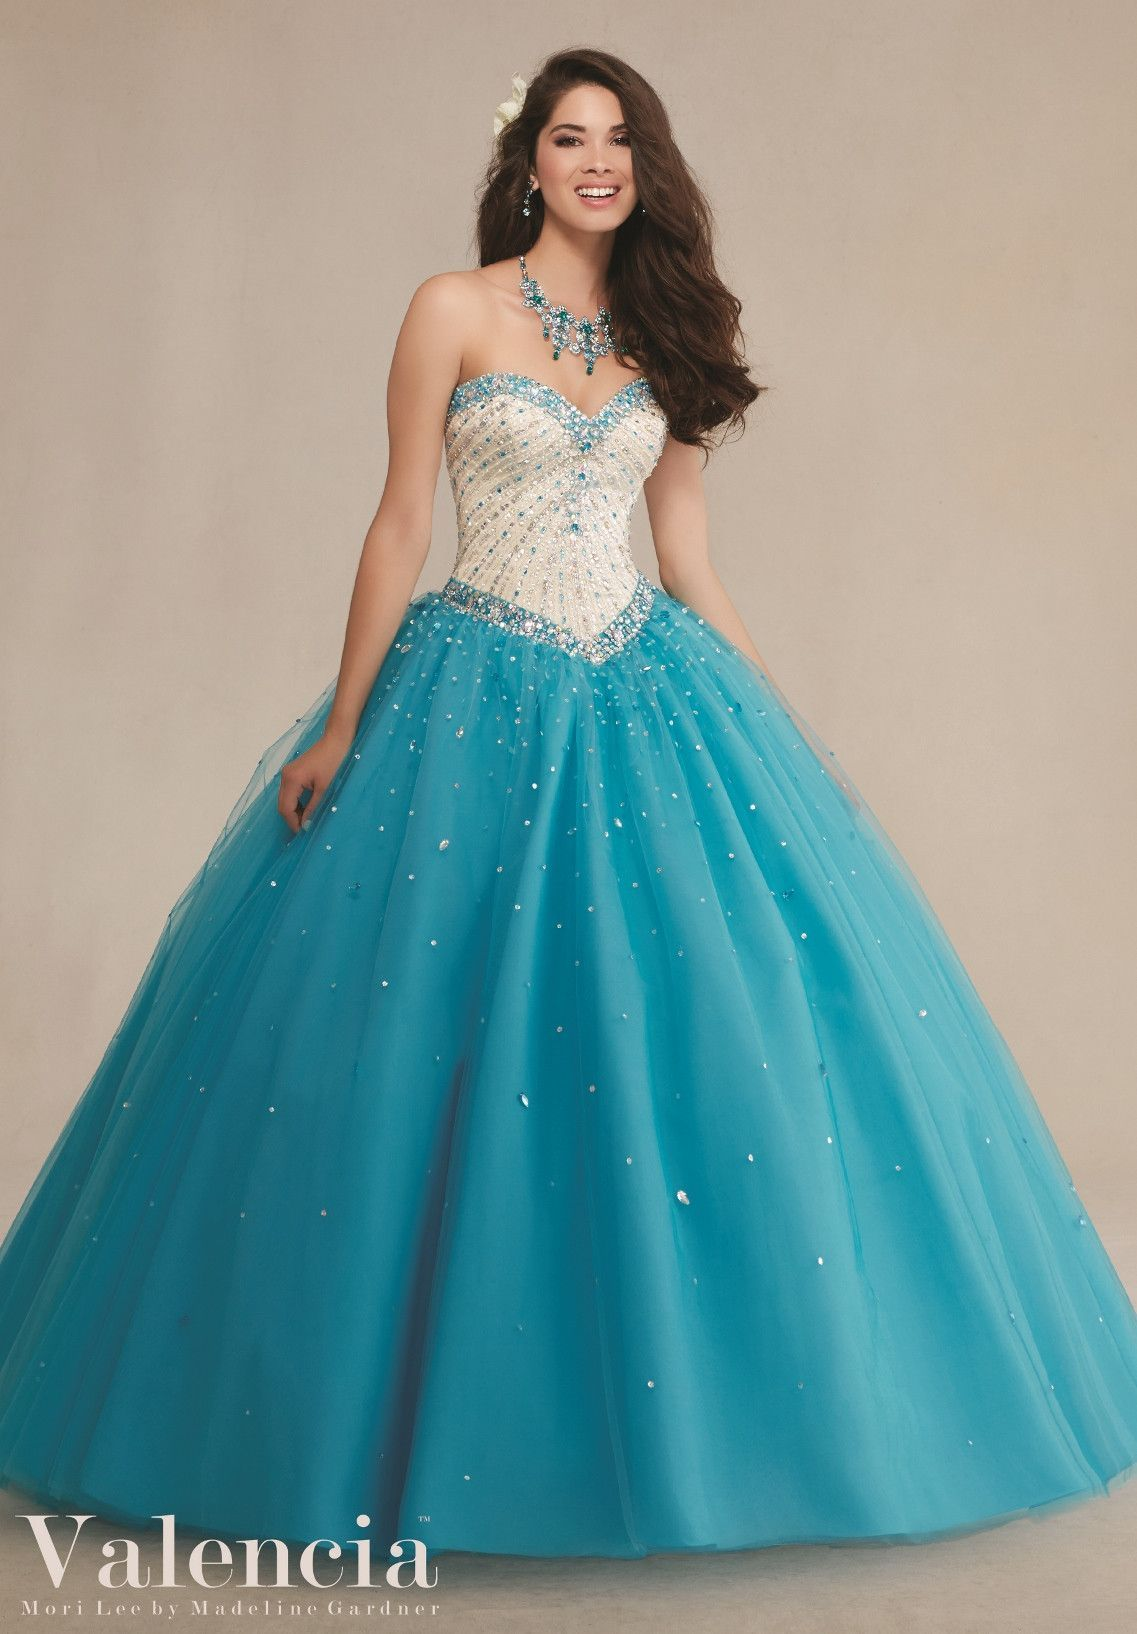 Mori Lee Valencia Quinceanera Dress 89083 | 15 años, Vestiditos y ...